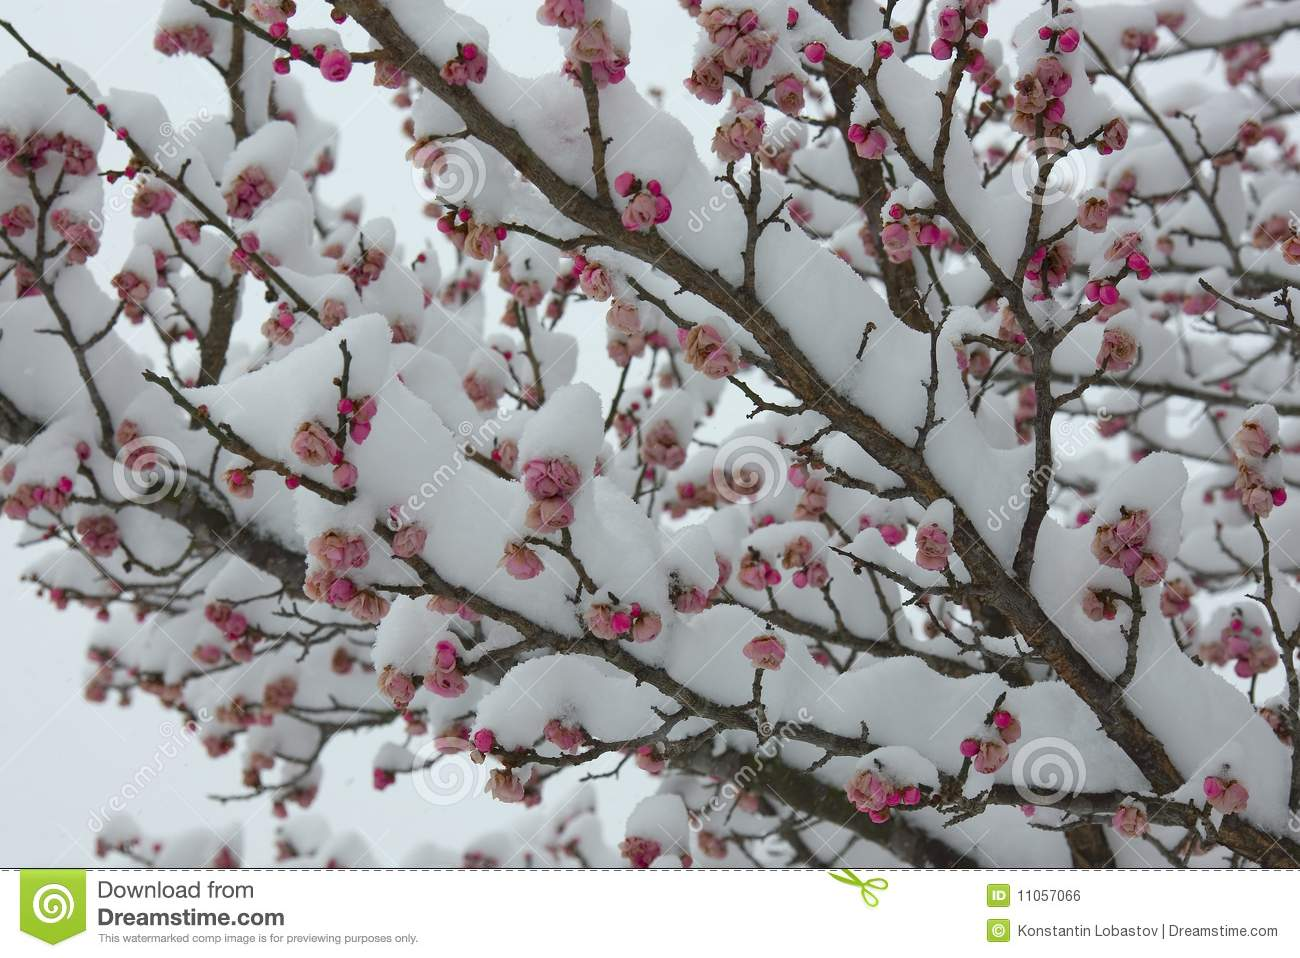 Mixing Of Spring And Winter Royalty Free Stock Image